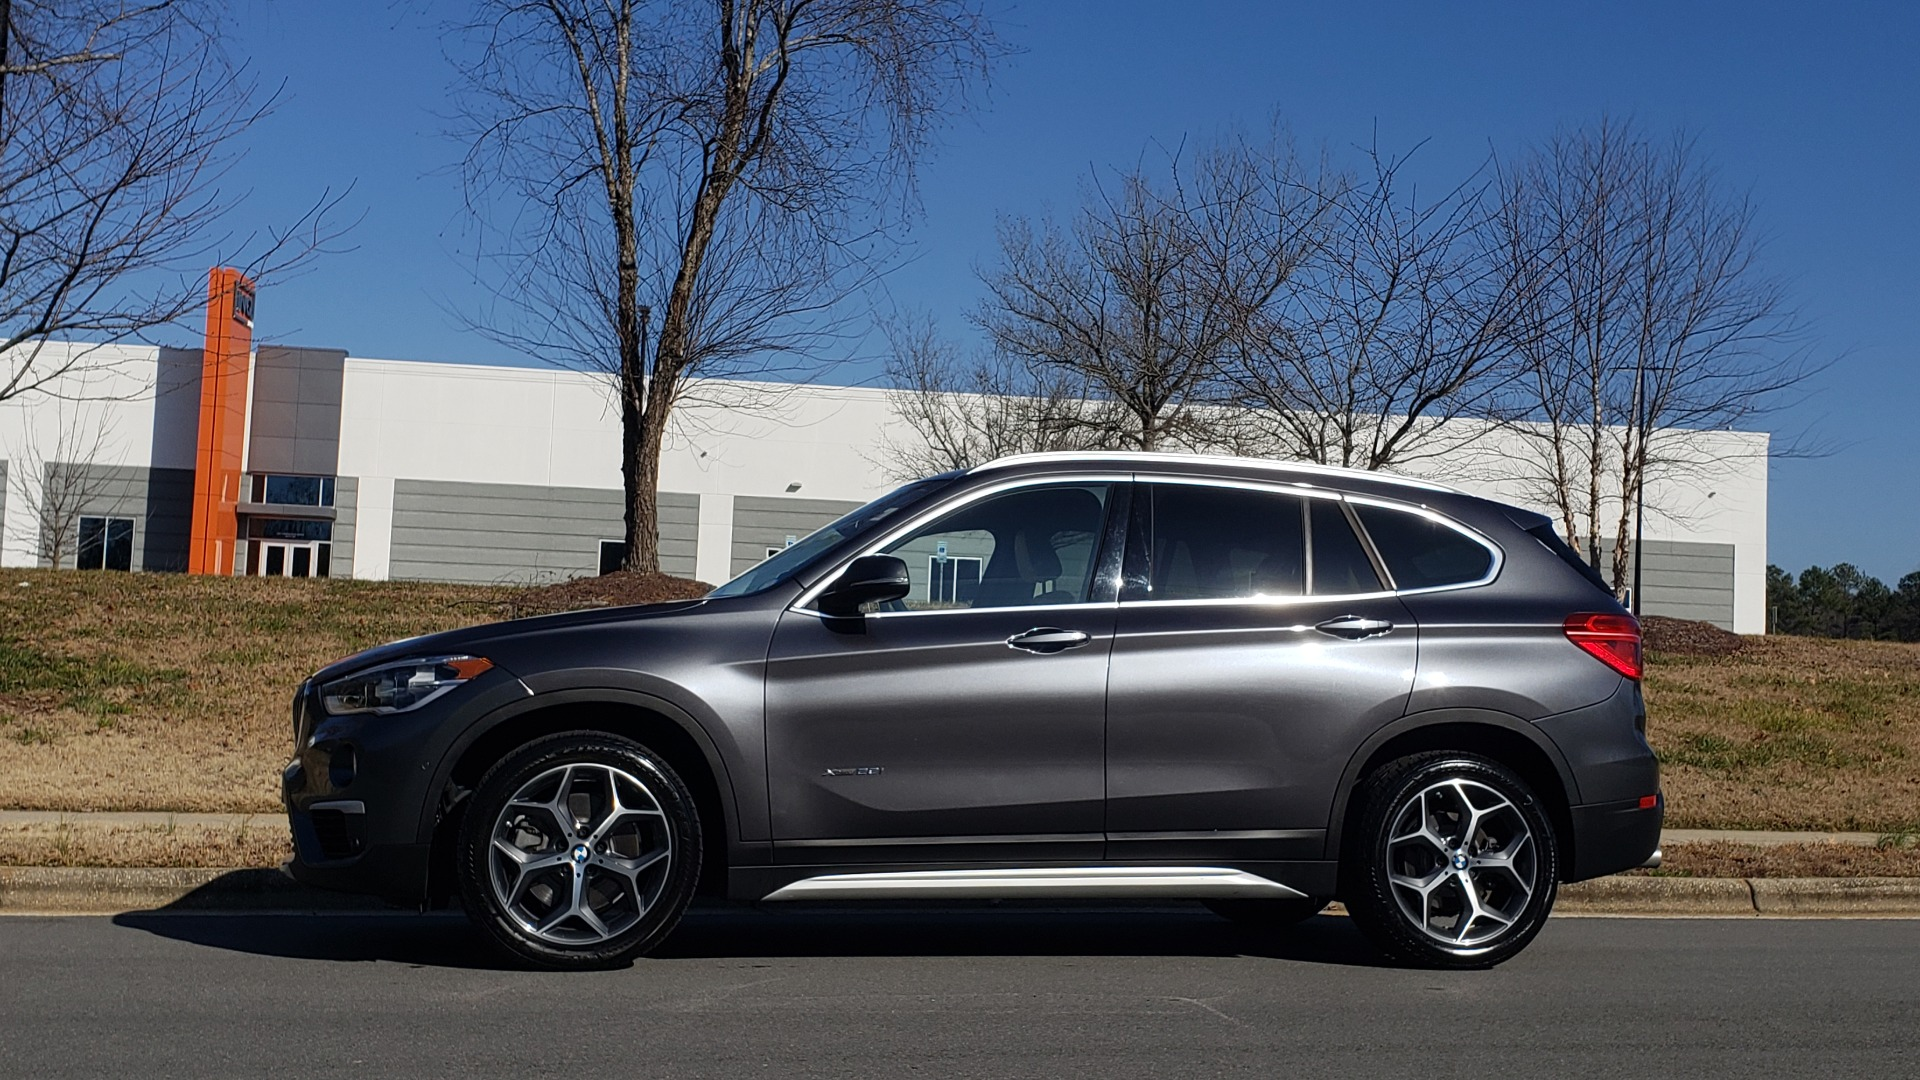 Used 2017 BMW X1 XDRIVE28I / PREM / TECH / DRVR ASST PLUS / COLD WTHR / REARVIEW for sale Sold at Formula Imports in Charlotte NC 28227 2